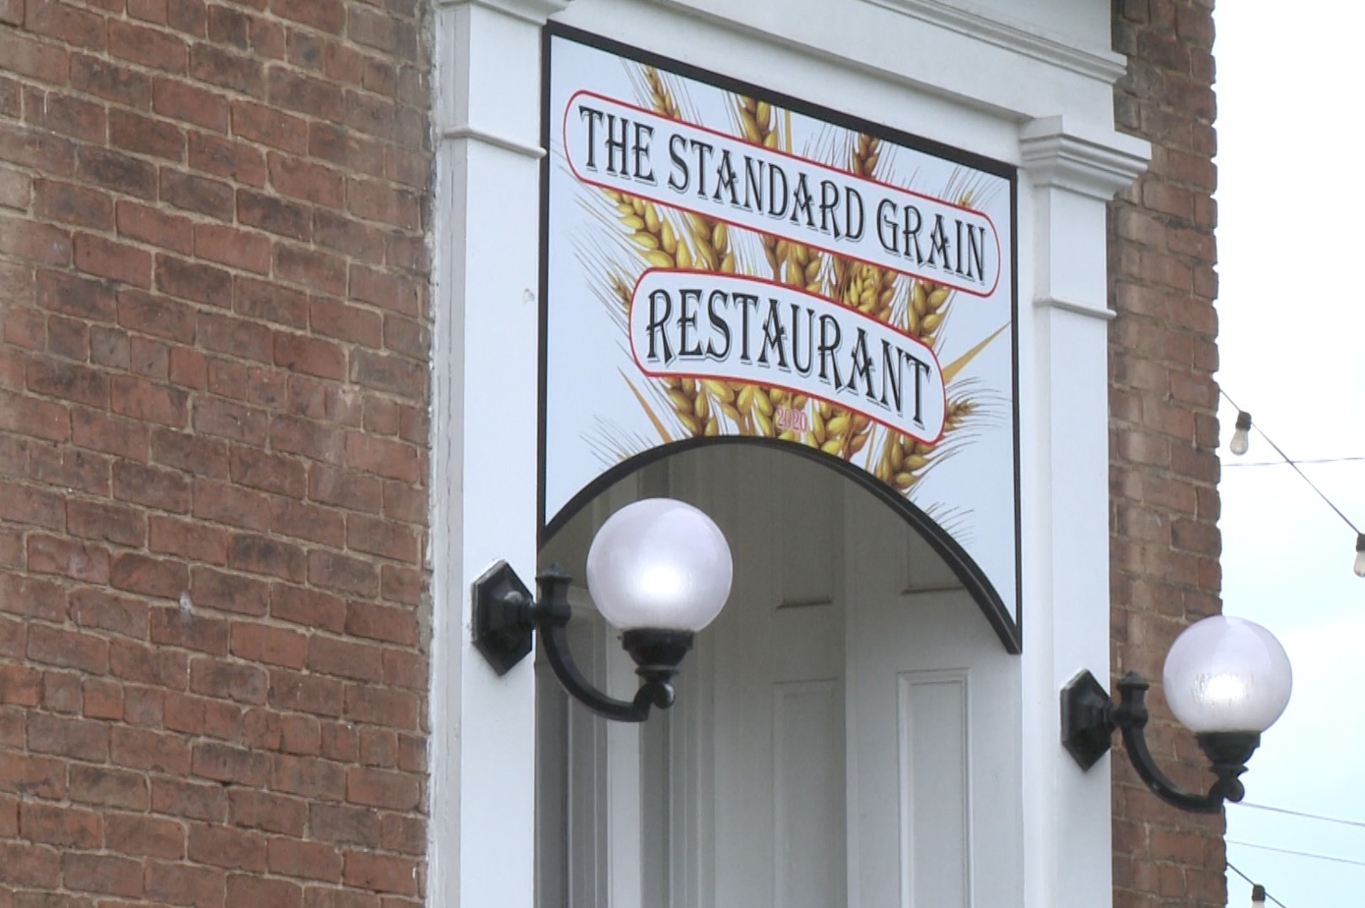 The Standard Grain Restaurant